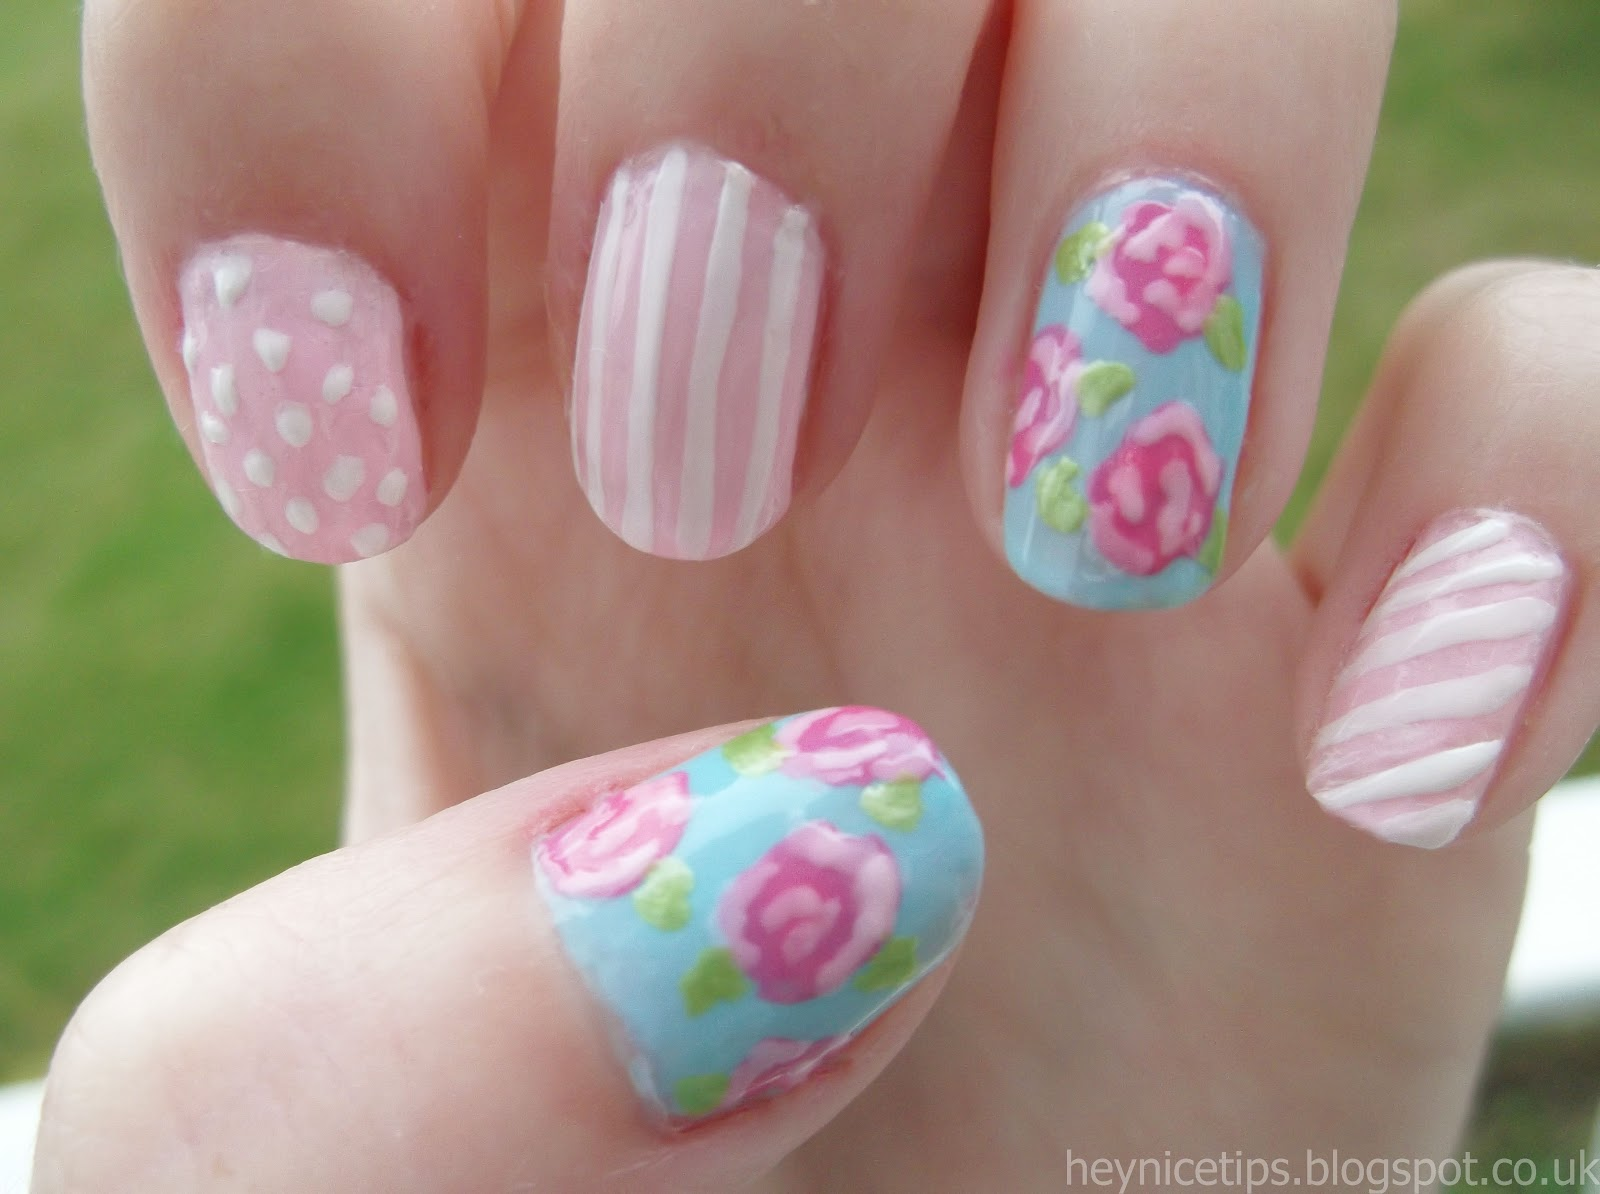 This is my shabby chic/vintage rose nail art tutorial, inspired by